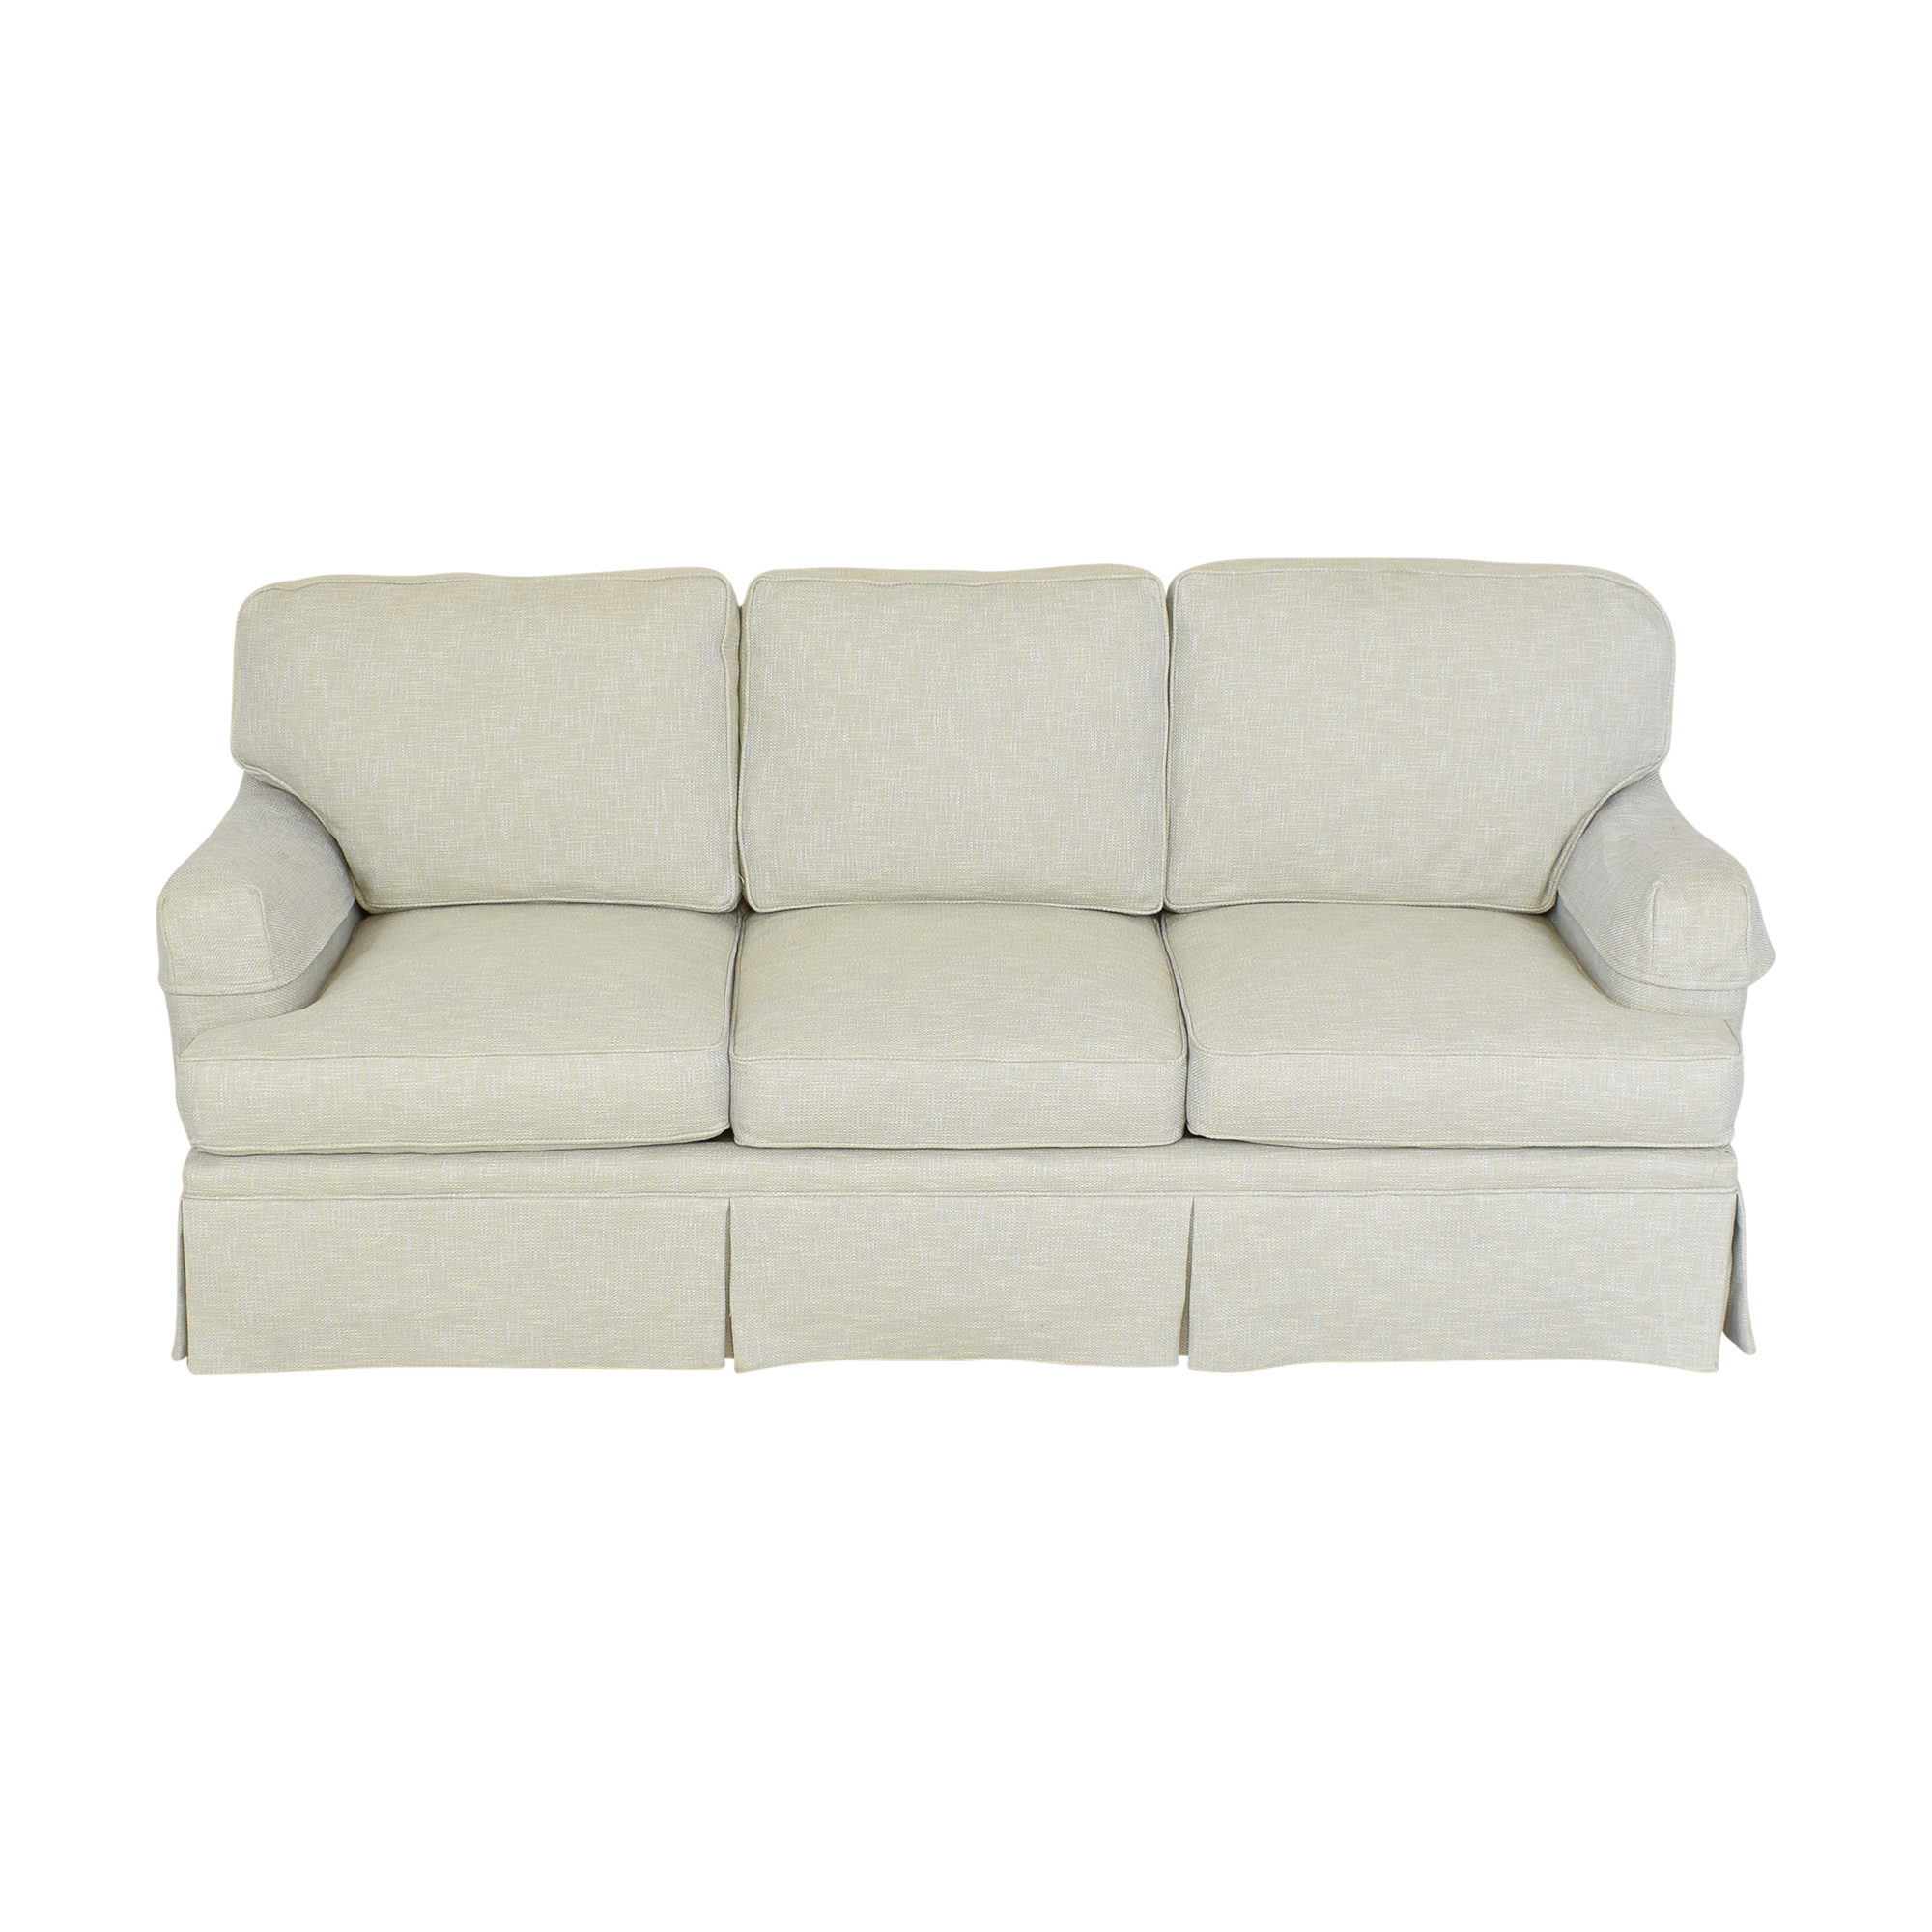 Henredon Upholstery Collection Sofa sale